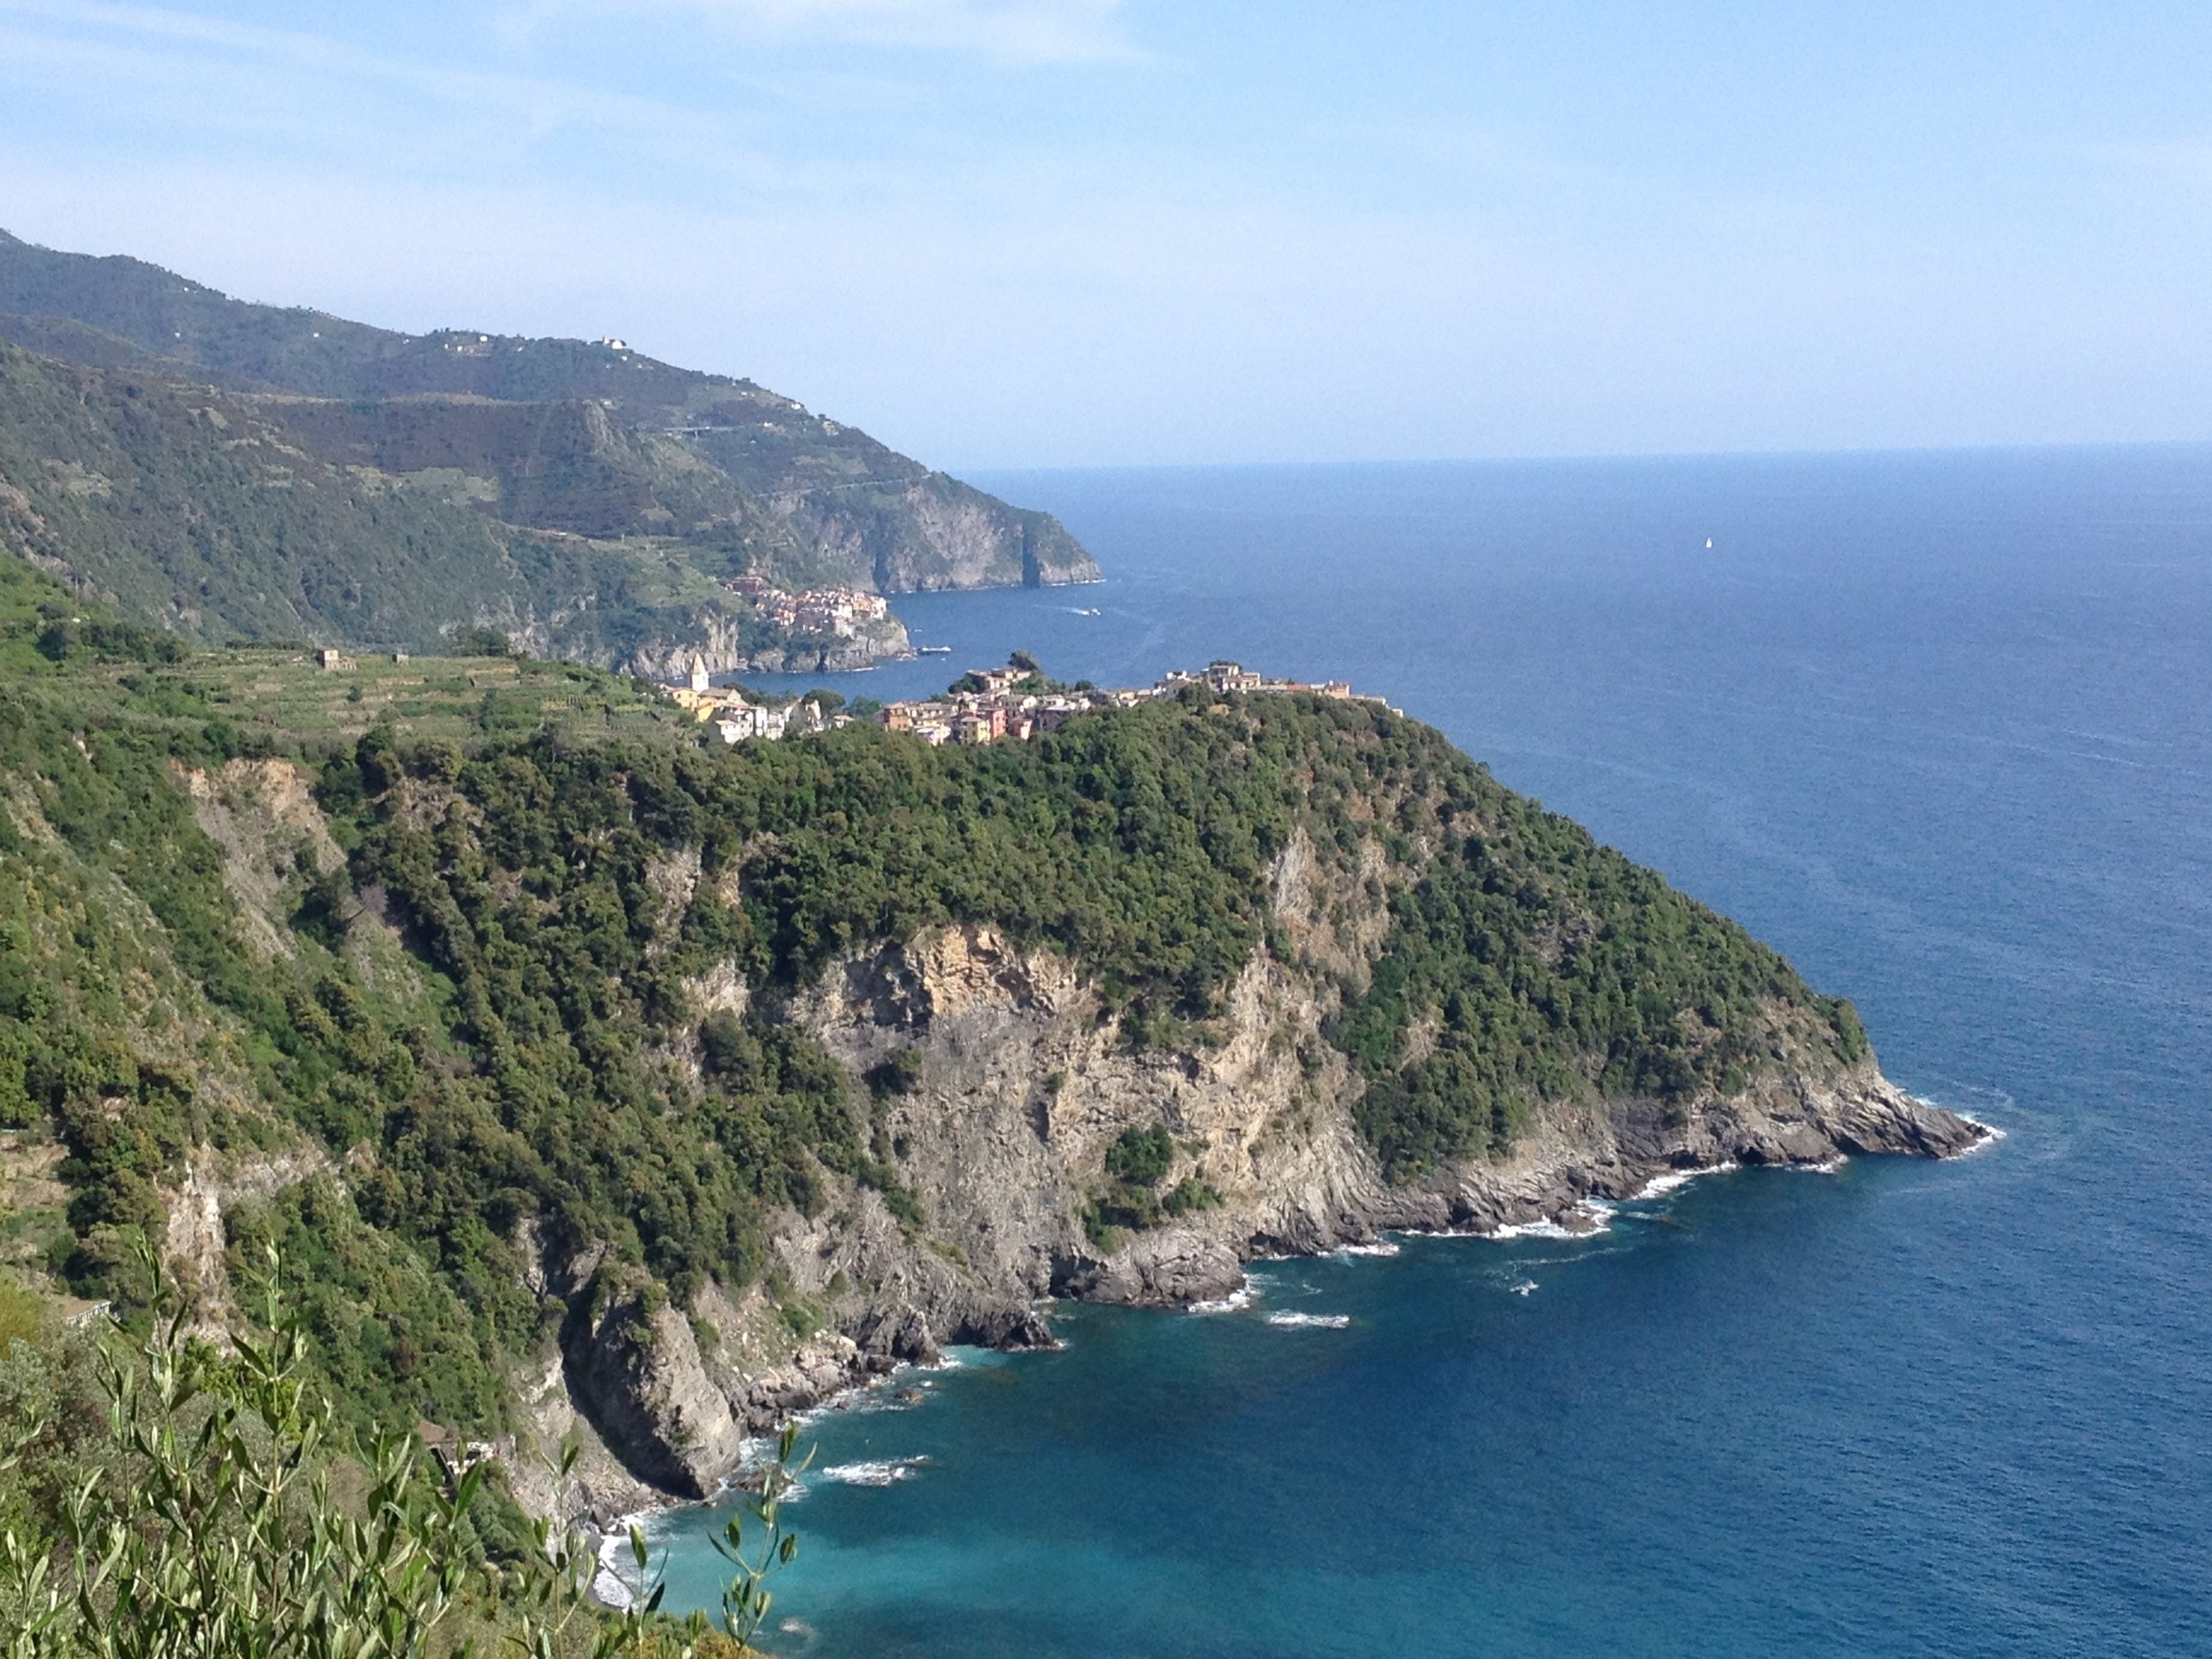 """A hot and sunny day on the trail...In the background, the village of Corniglia (pronounced """"Cornelia"""") with about 40 more minutes of hiking to go."""